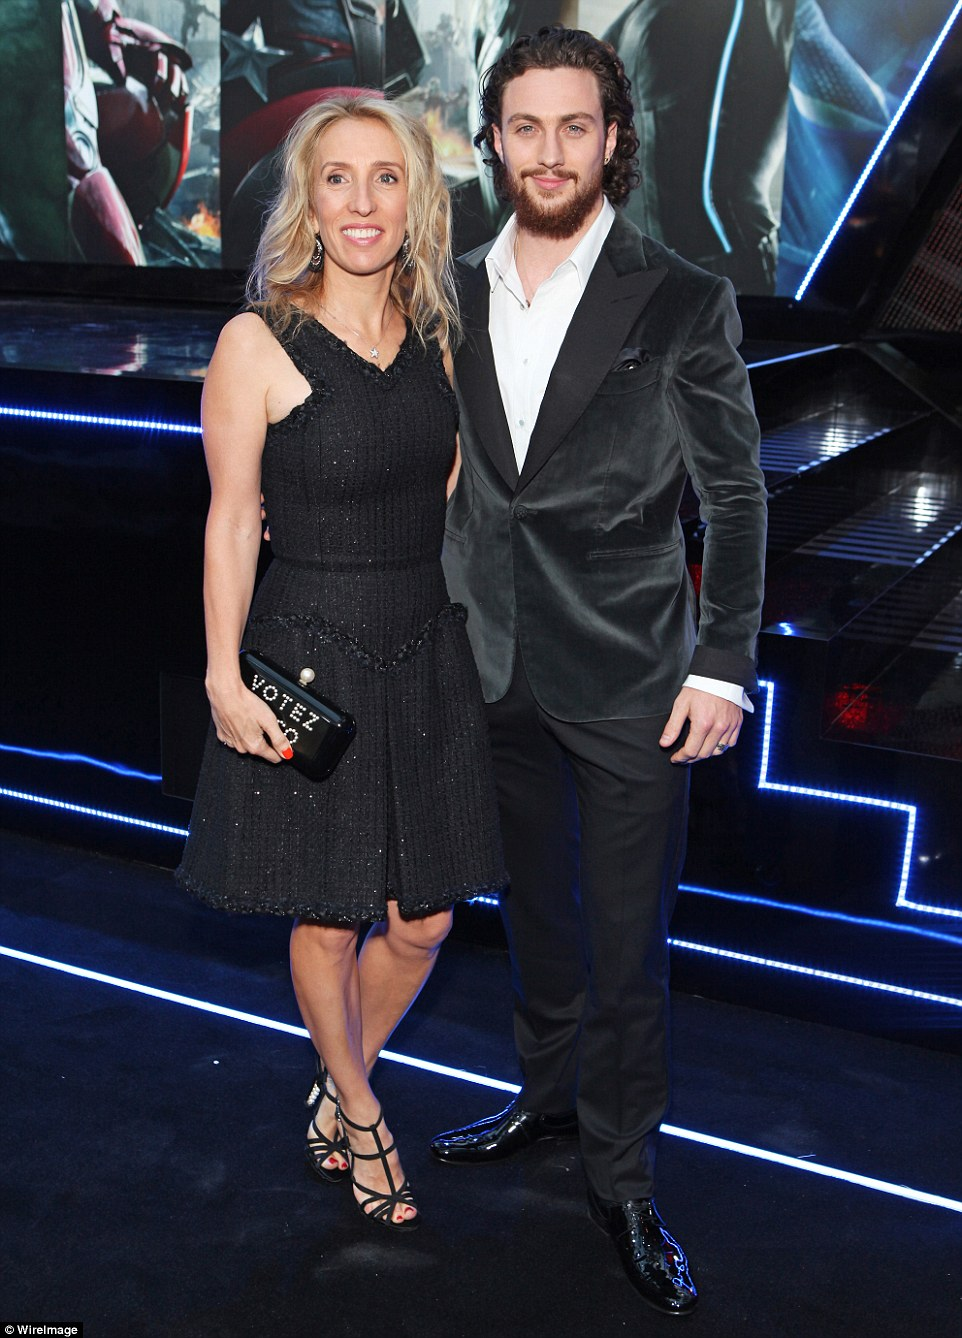 27D3A84700000578-3049296-Loved_up_Sam_Taylor_Johnson_accompanied_her_husband_Aaron_who_pl-a-100_1429645578701.jpg